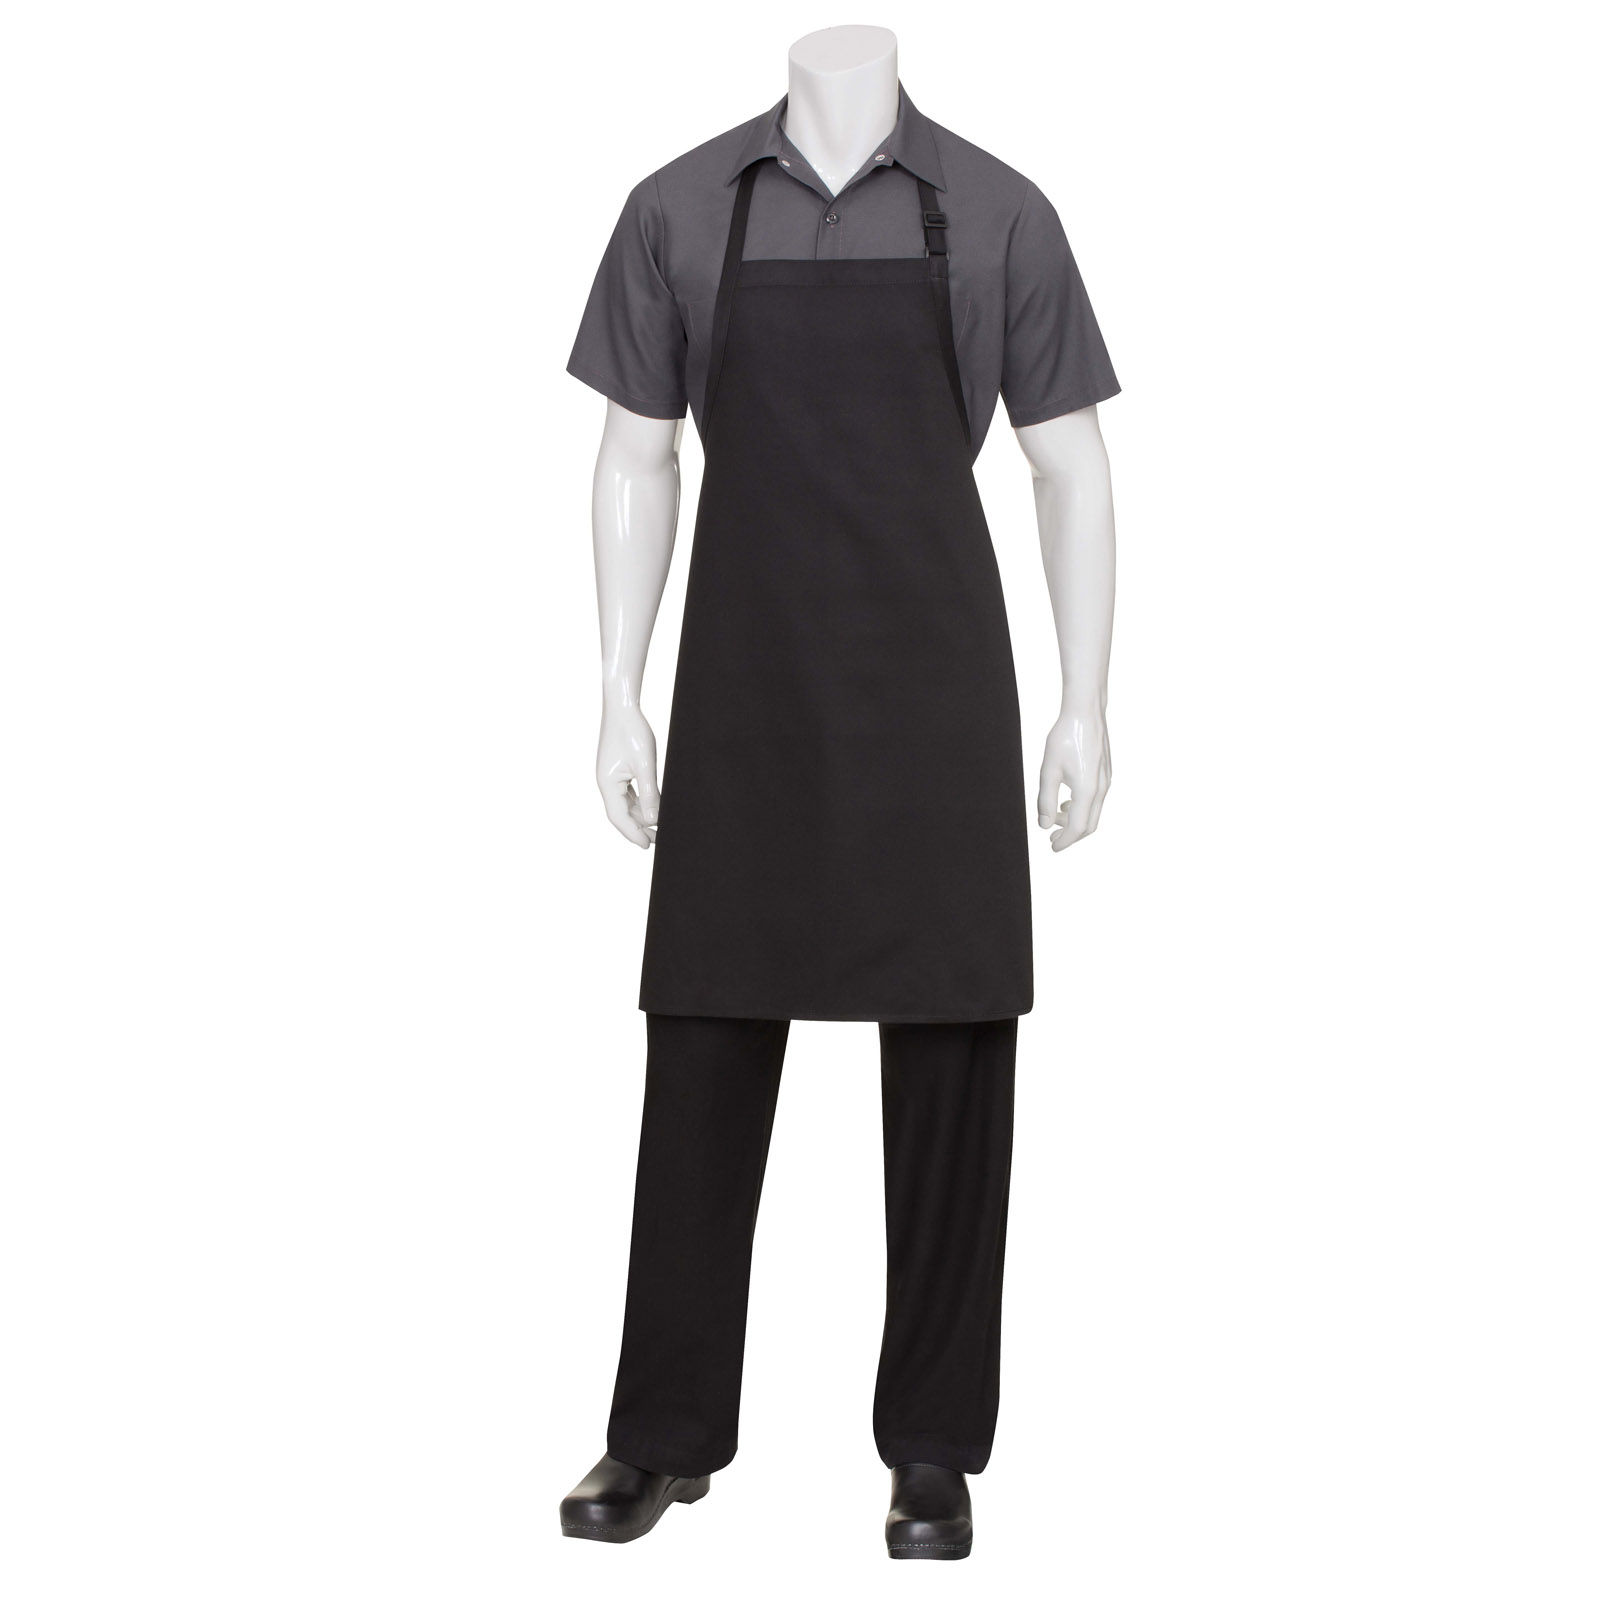 Chef Works F8 NPBLK0 bib apron